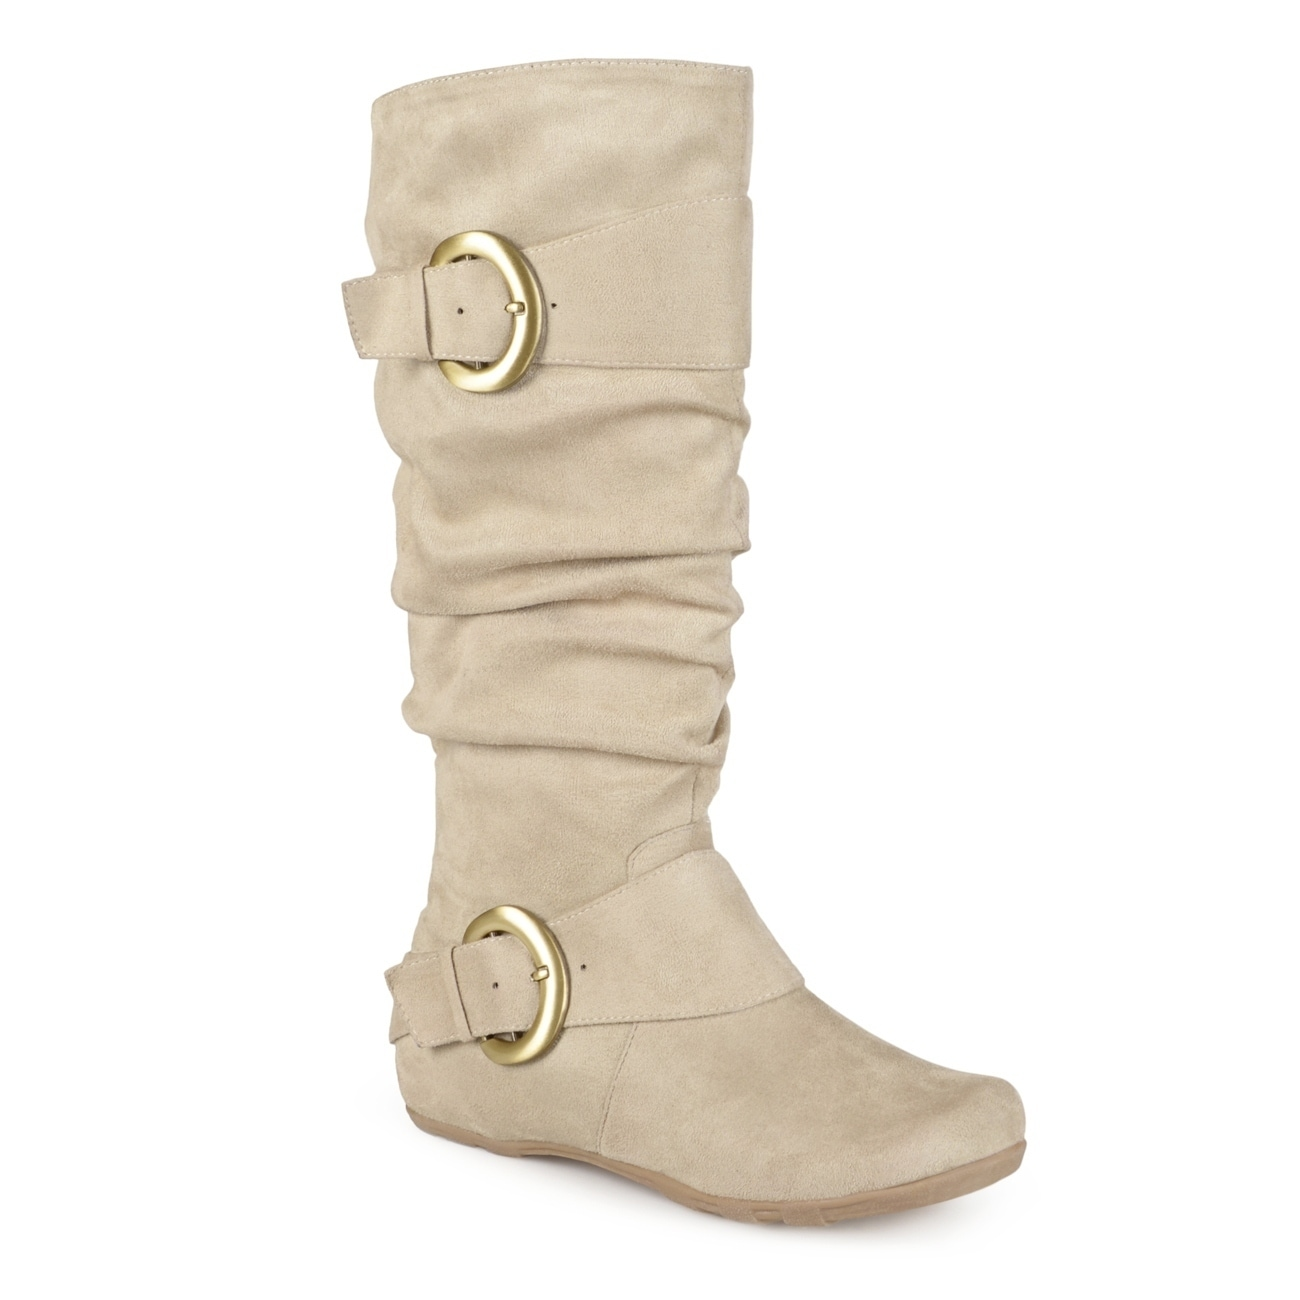 6441fb6838e Shop Journee Collection Women s  Jester-01  Slouch Buckle Boot - On Sale -  Free Shipping Today - Overstock - 3469442